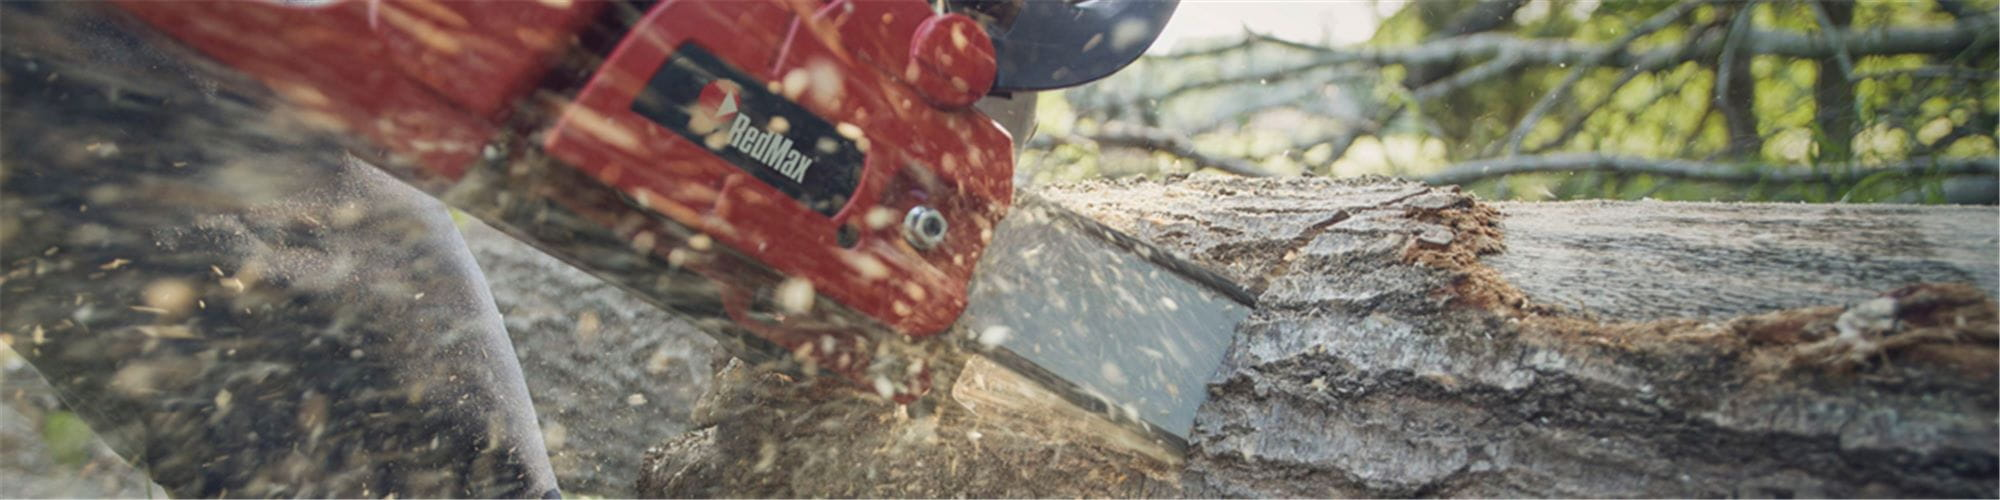 Chainsaw Rebate - Husqvarna - 2019